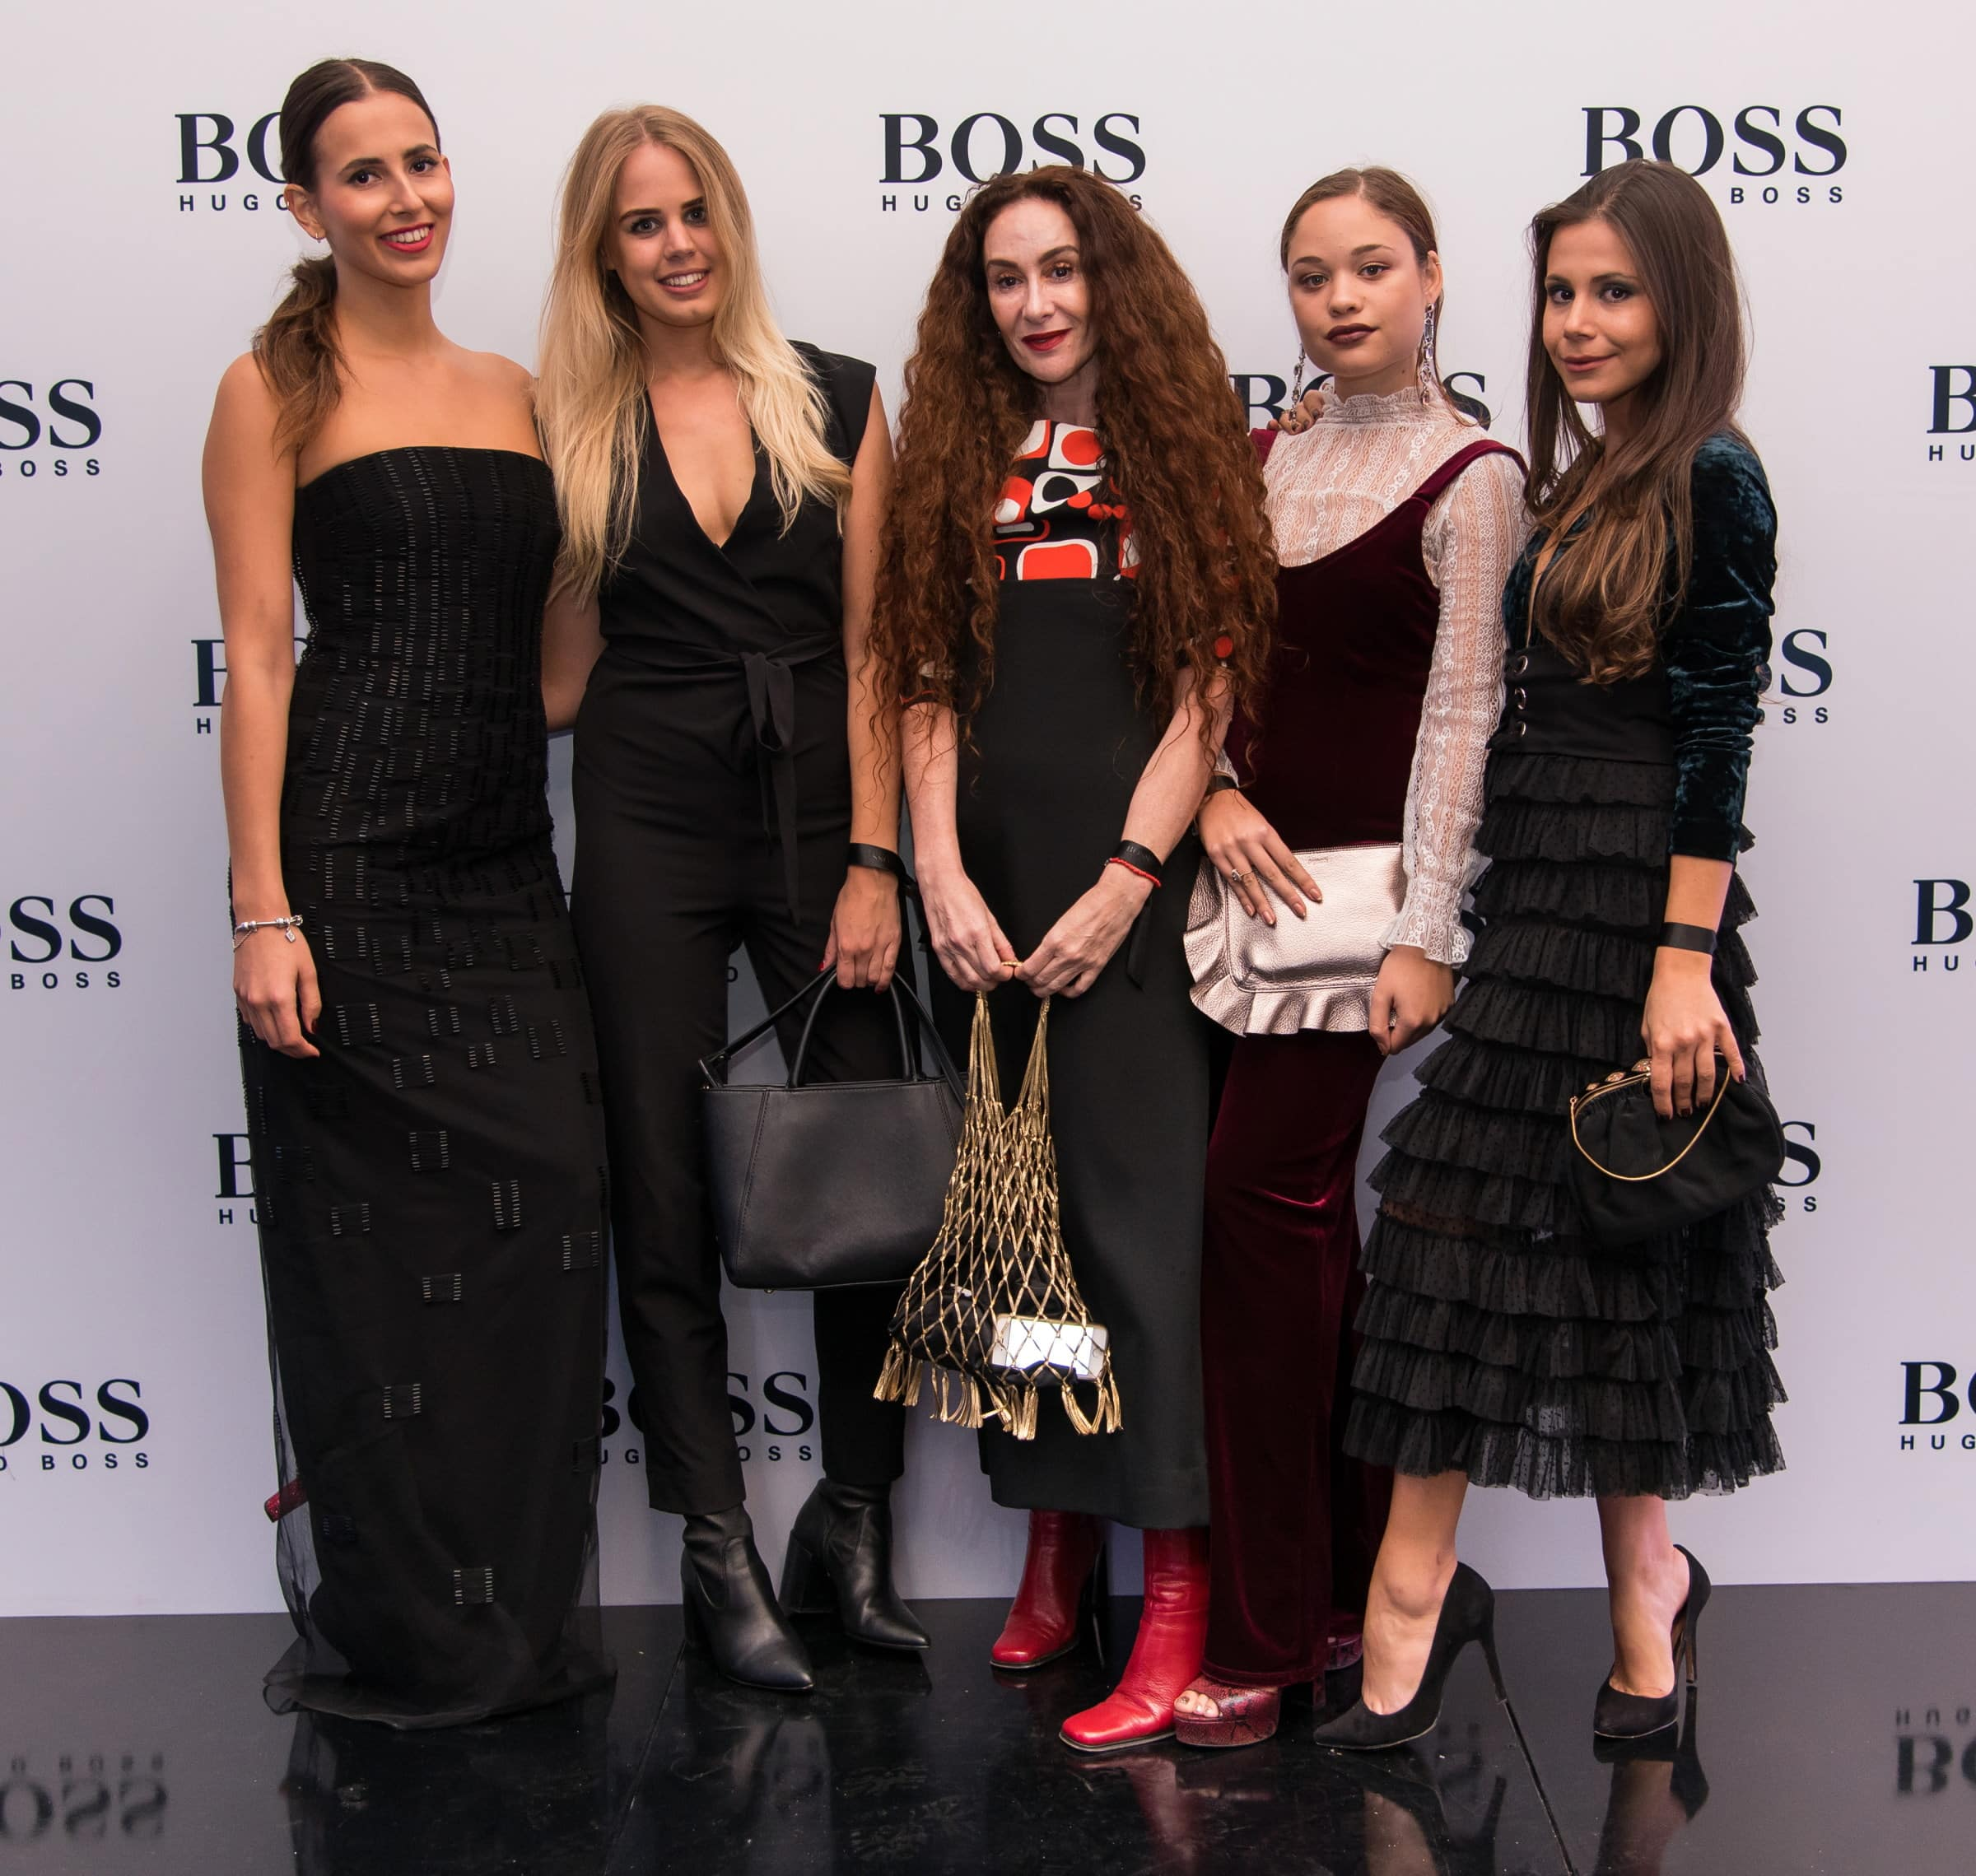 HUGO BOSS OPENS NEW BOSS STORE AT V&A WATERFRONT